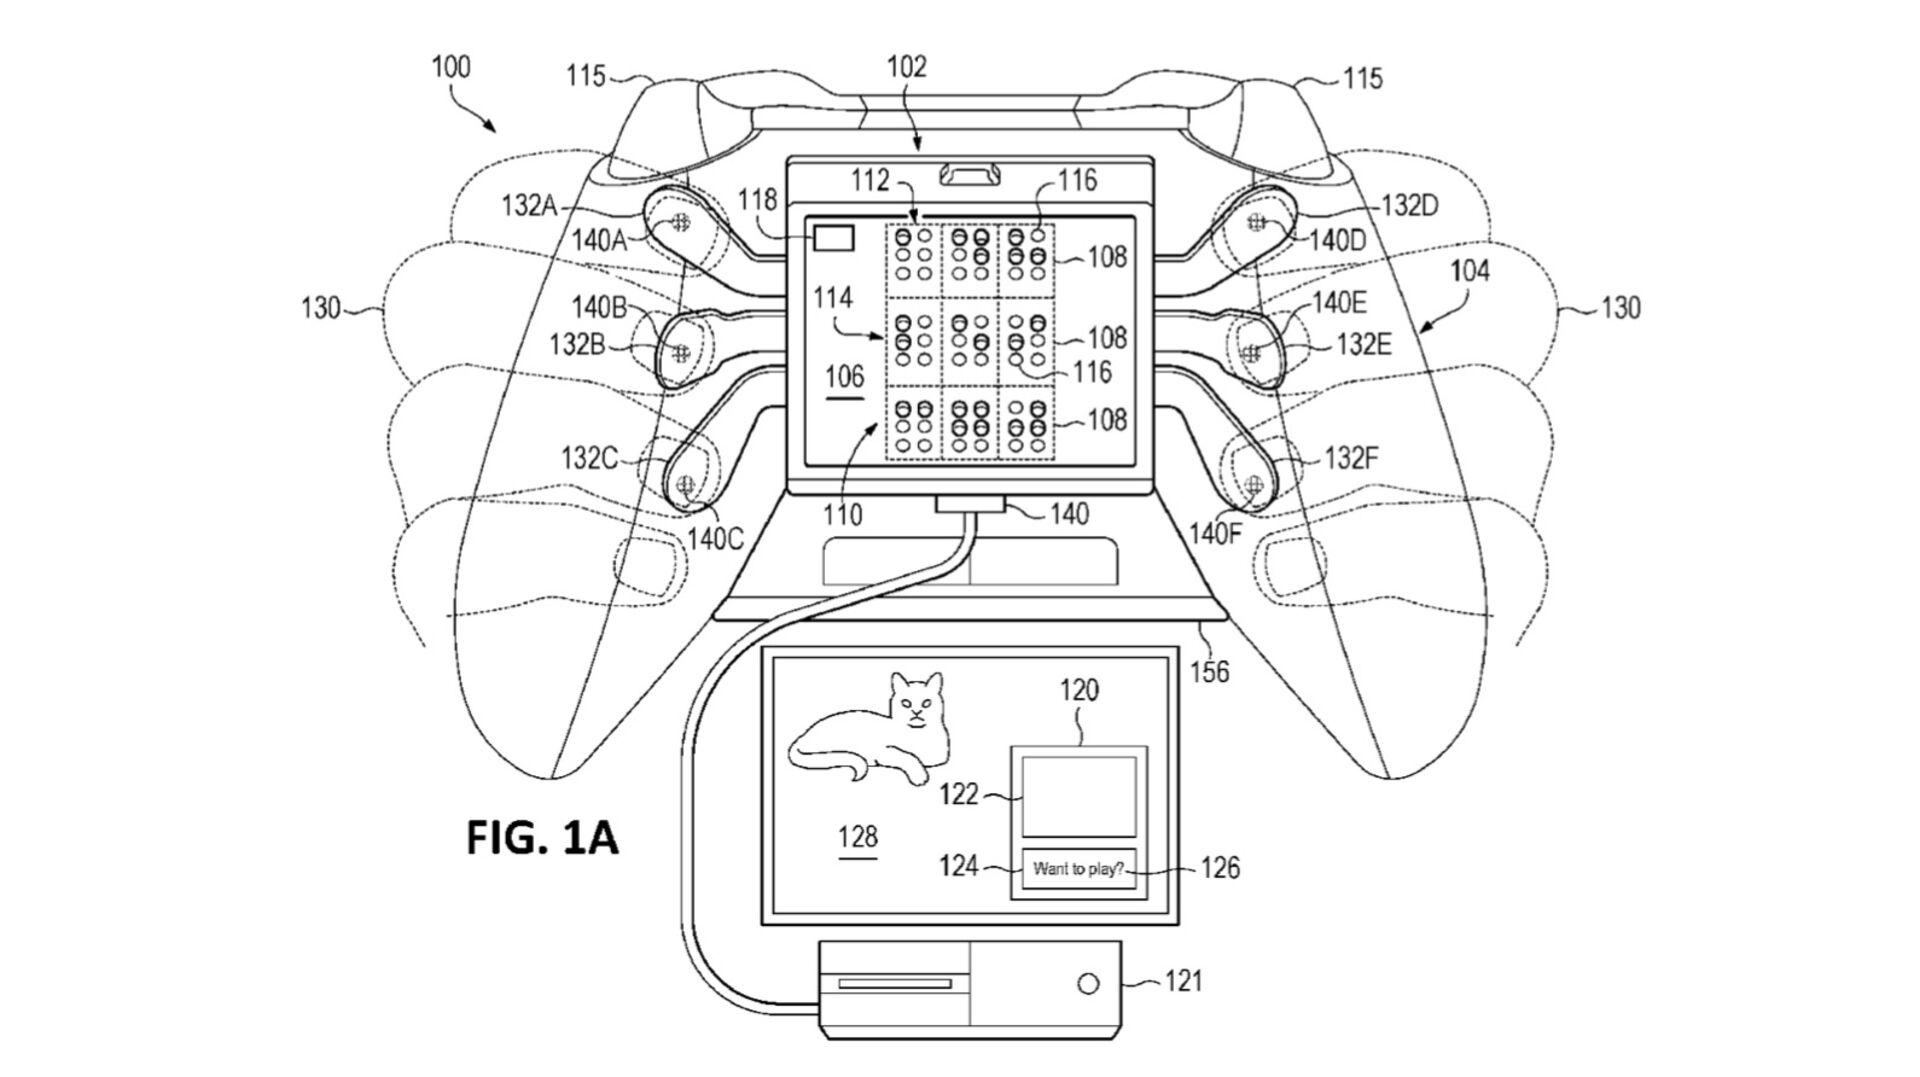 e sony dual shock 4 controller braille